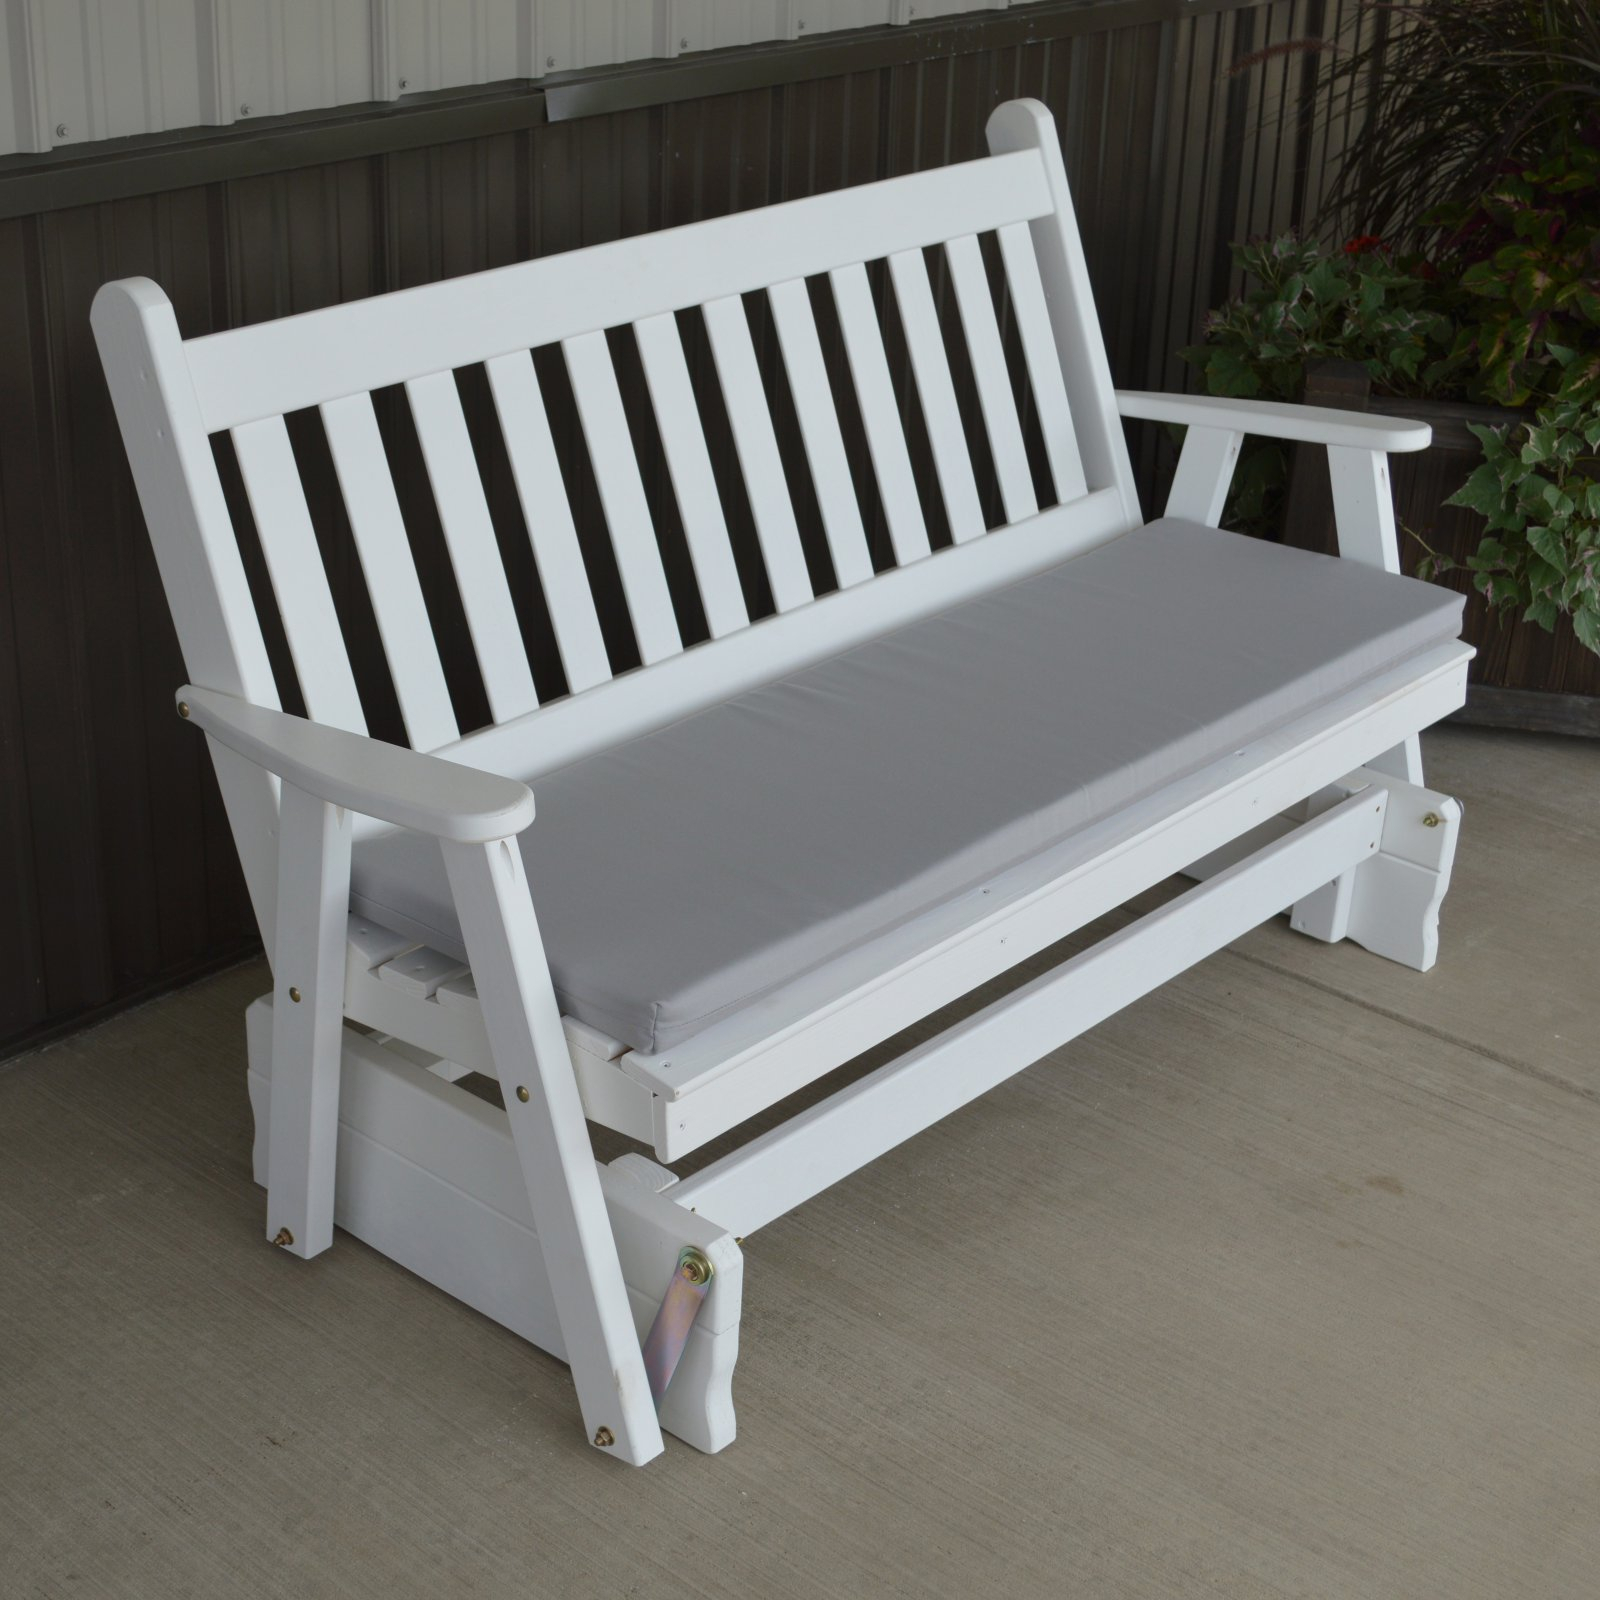 A & L Furniture Yellow Pine Traditional English Outdoor Bench Glider With Traditional English Glider Benches (View 18 of 25)